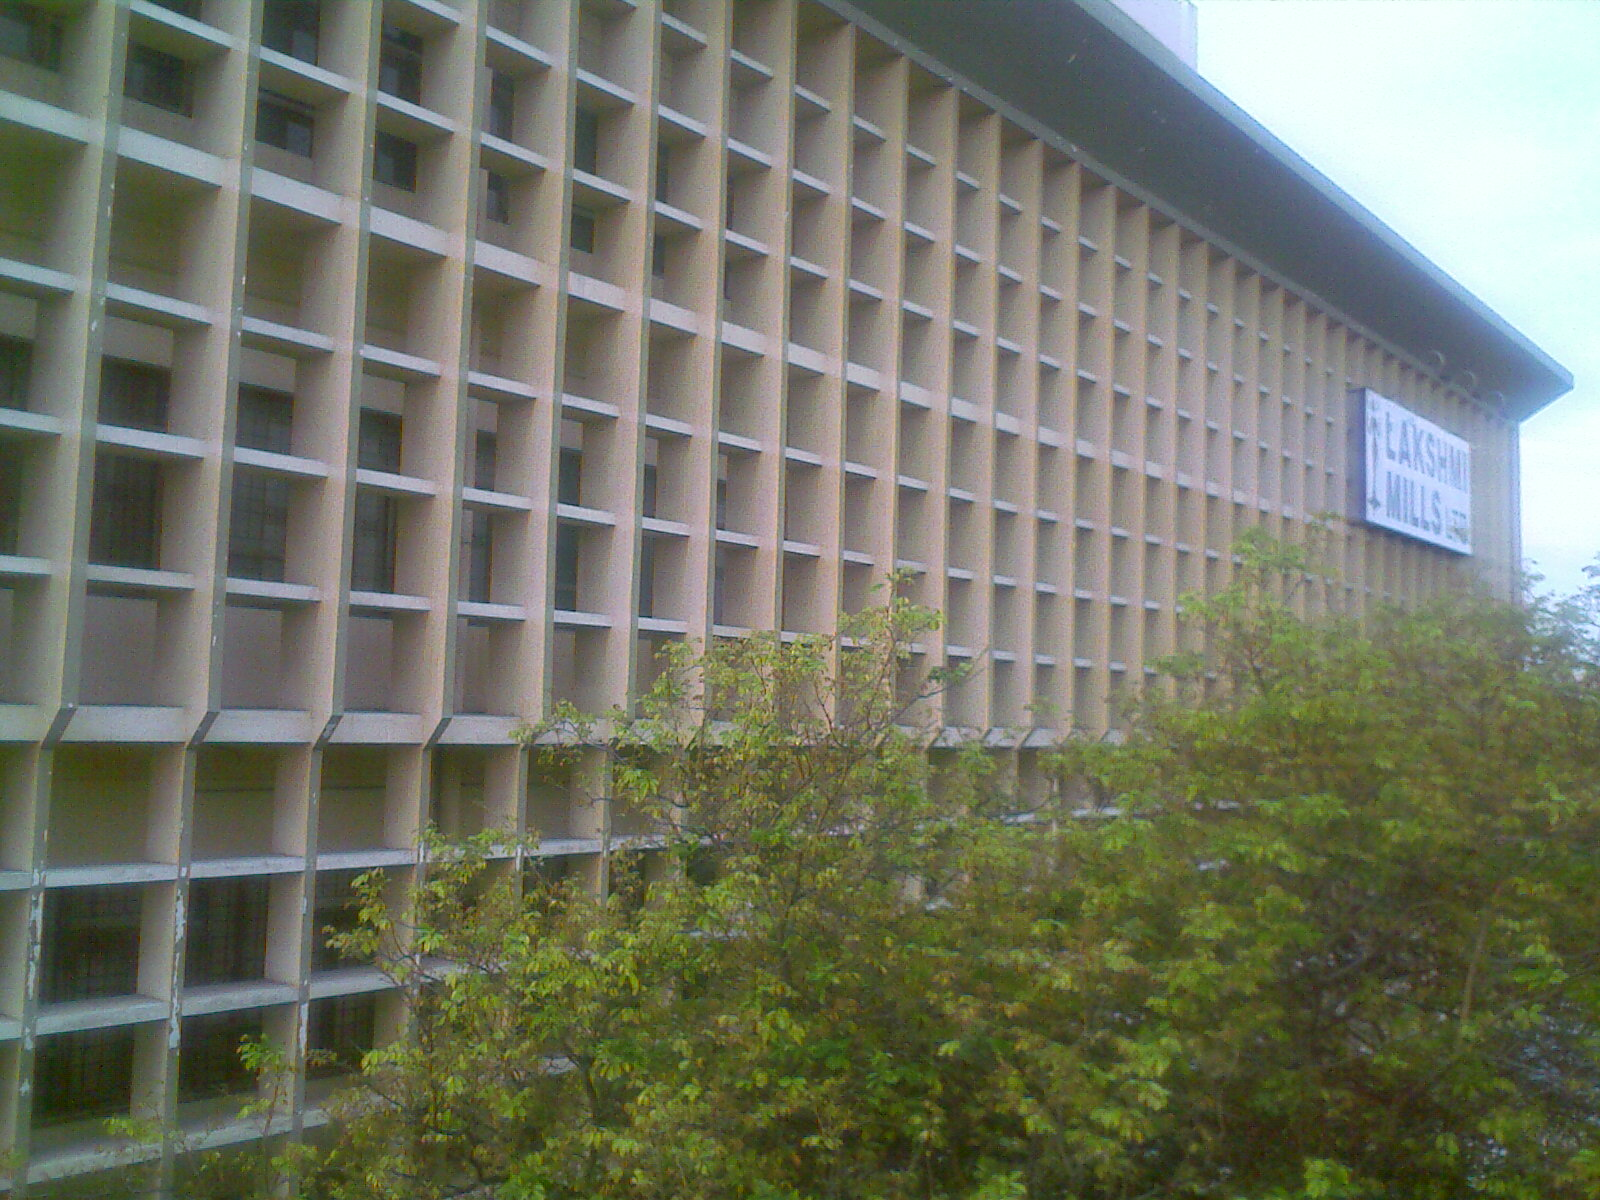 Boxed exterior of a building in Cbe